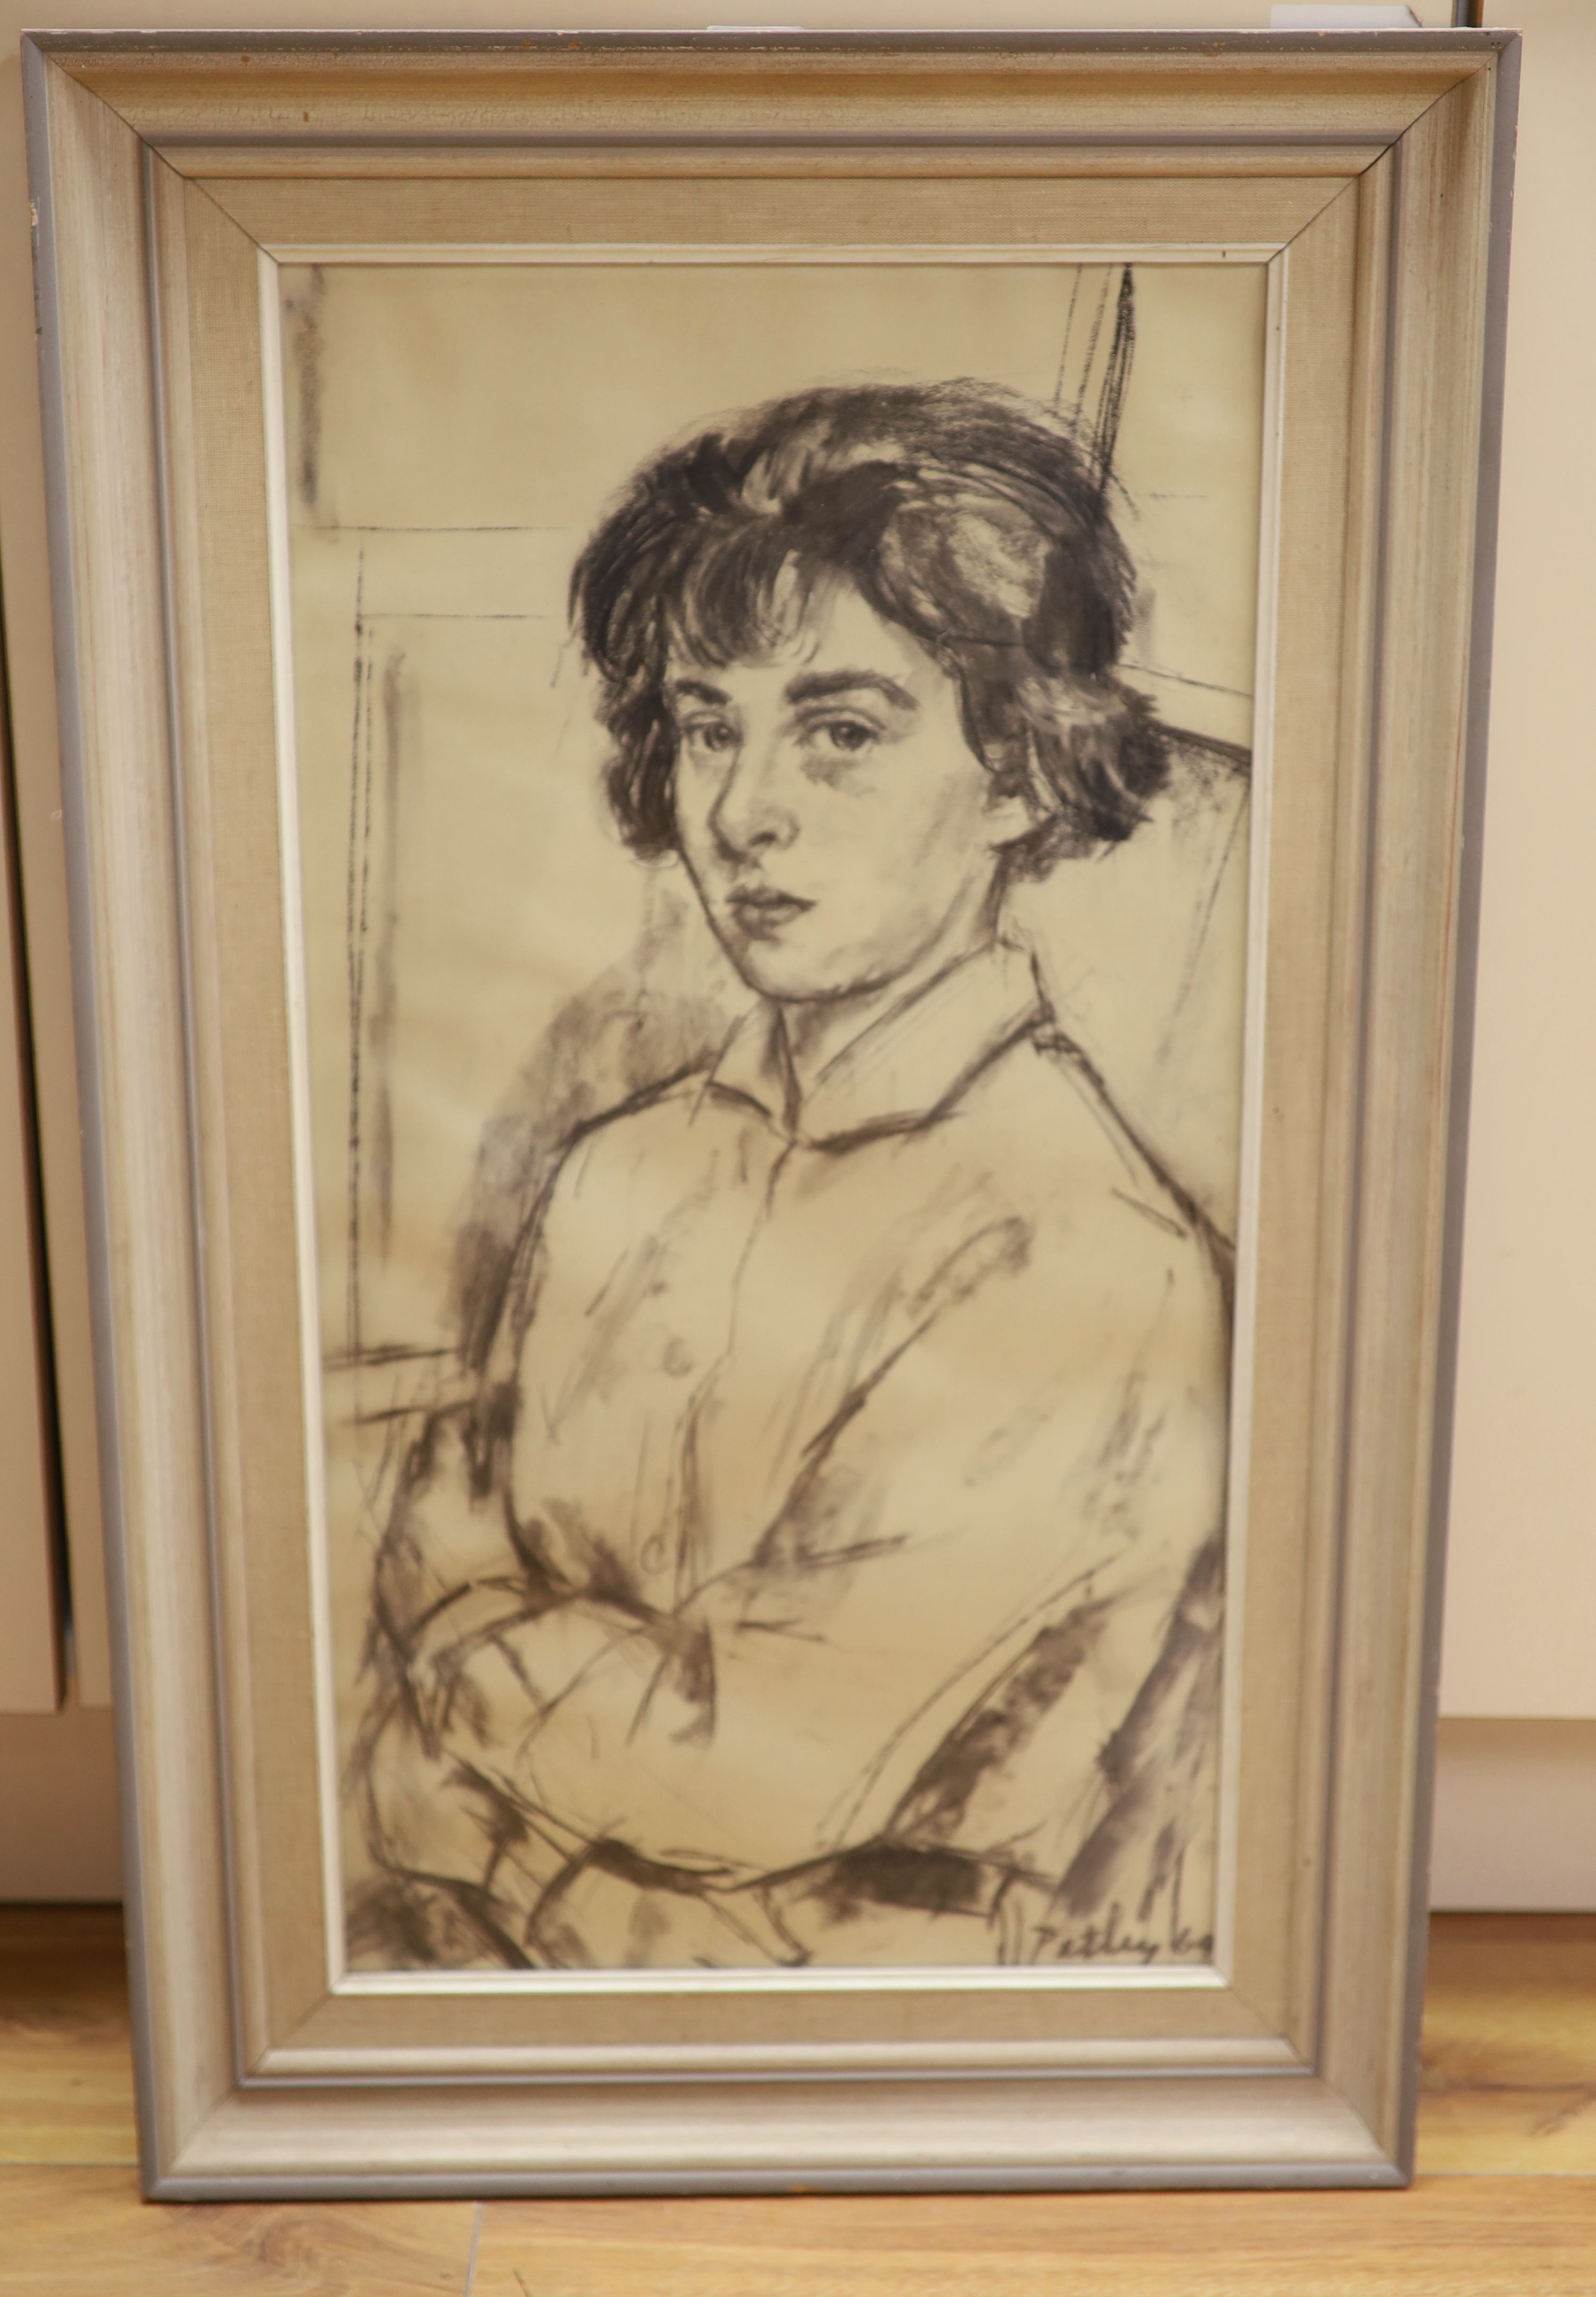 Llewellyn Petley Jones (1908-1986), charcoal drawing, Portrait of Miss Nicola Taylor, signed and - Image 2 of 3